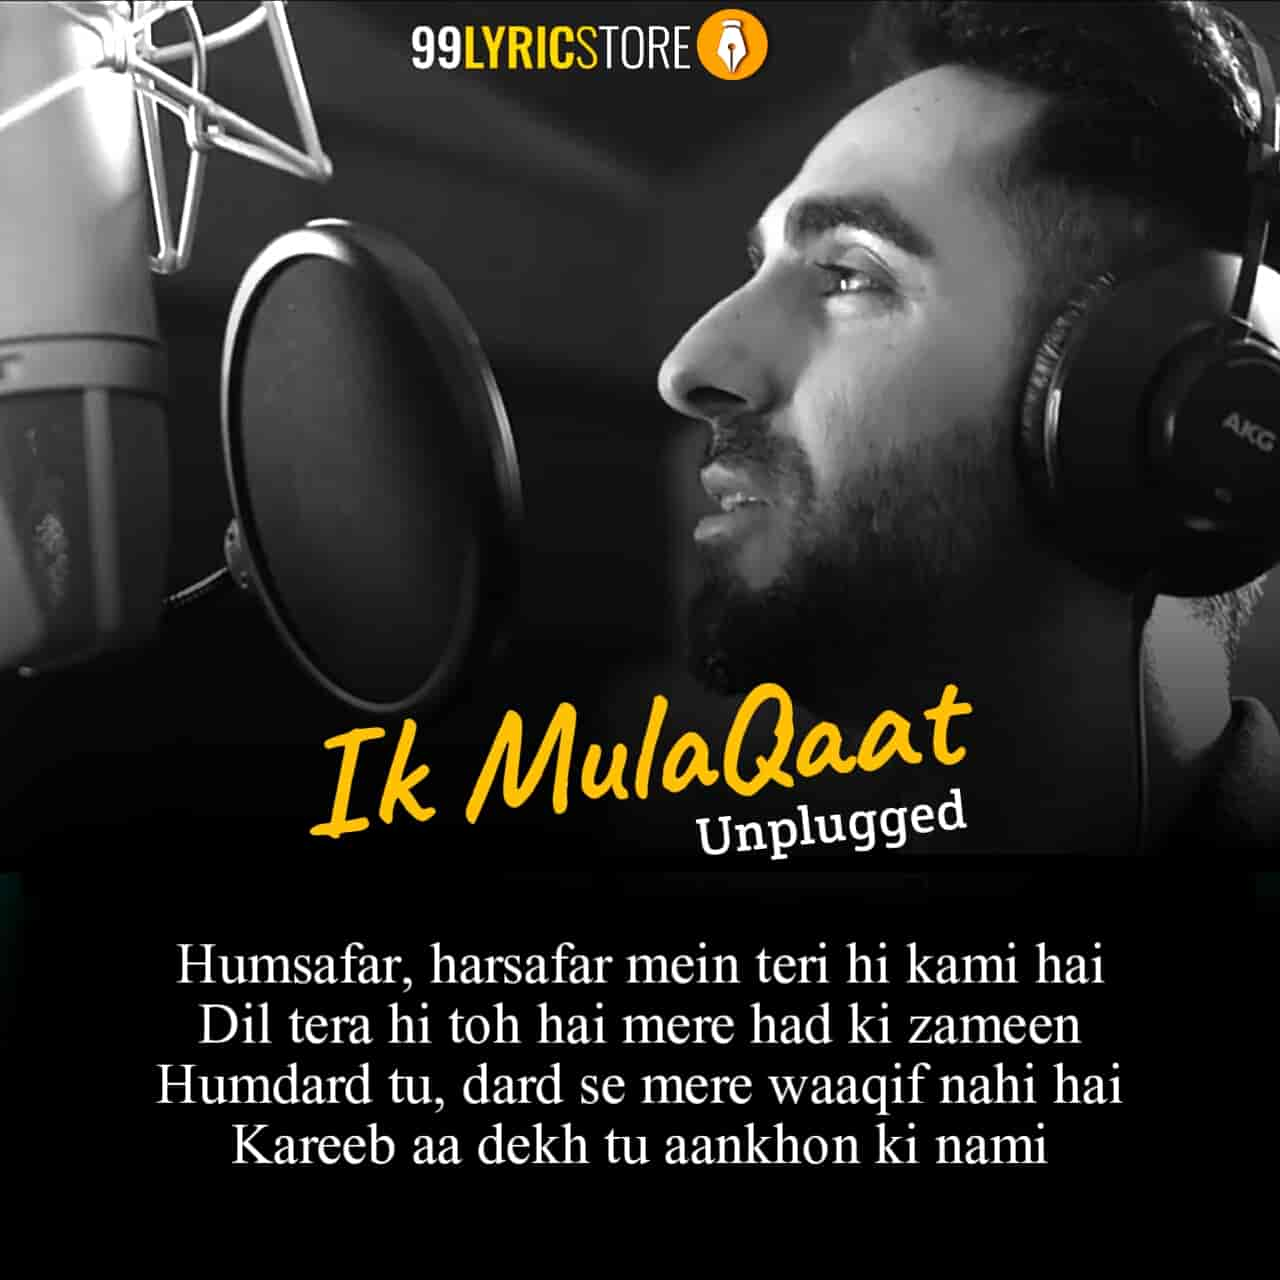 Ik Mulaqaat Unplugged Hindi song sung by Ayushmann Khurrana